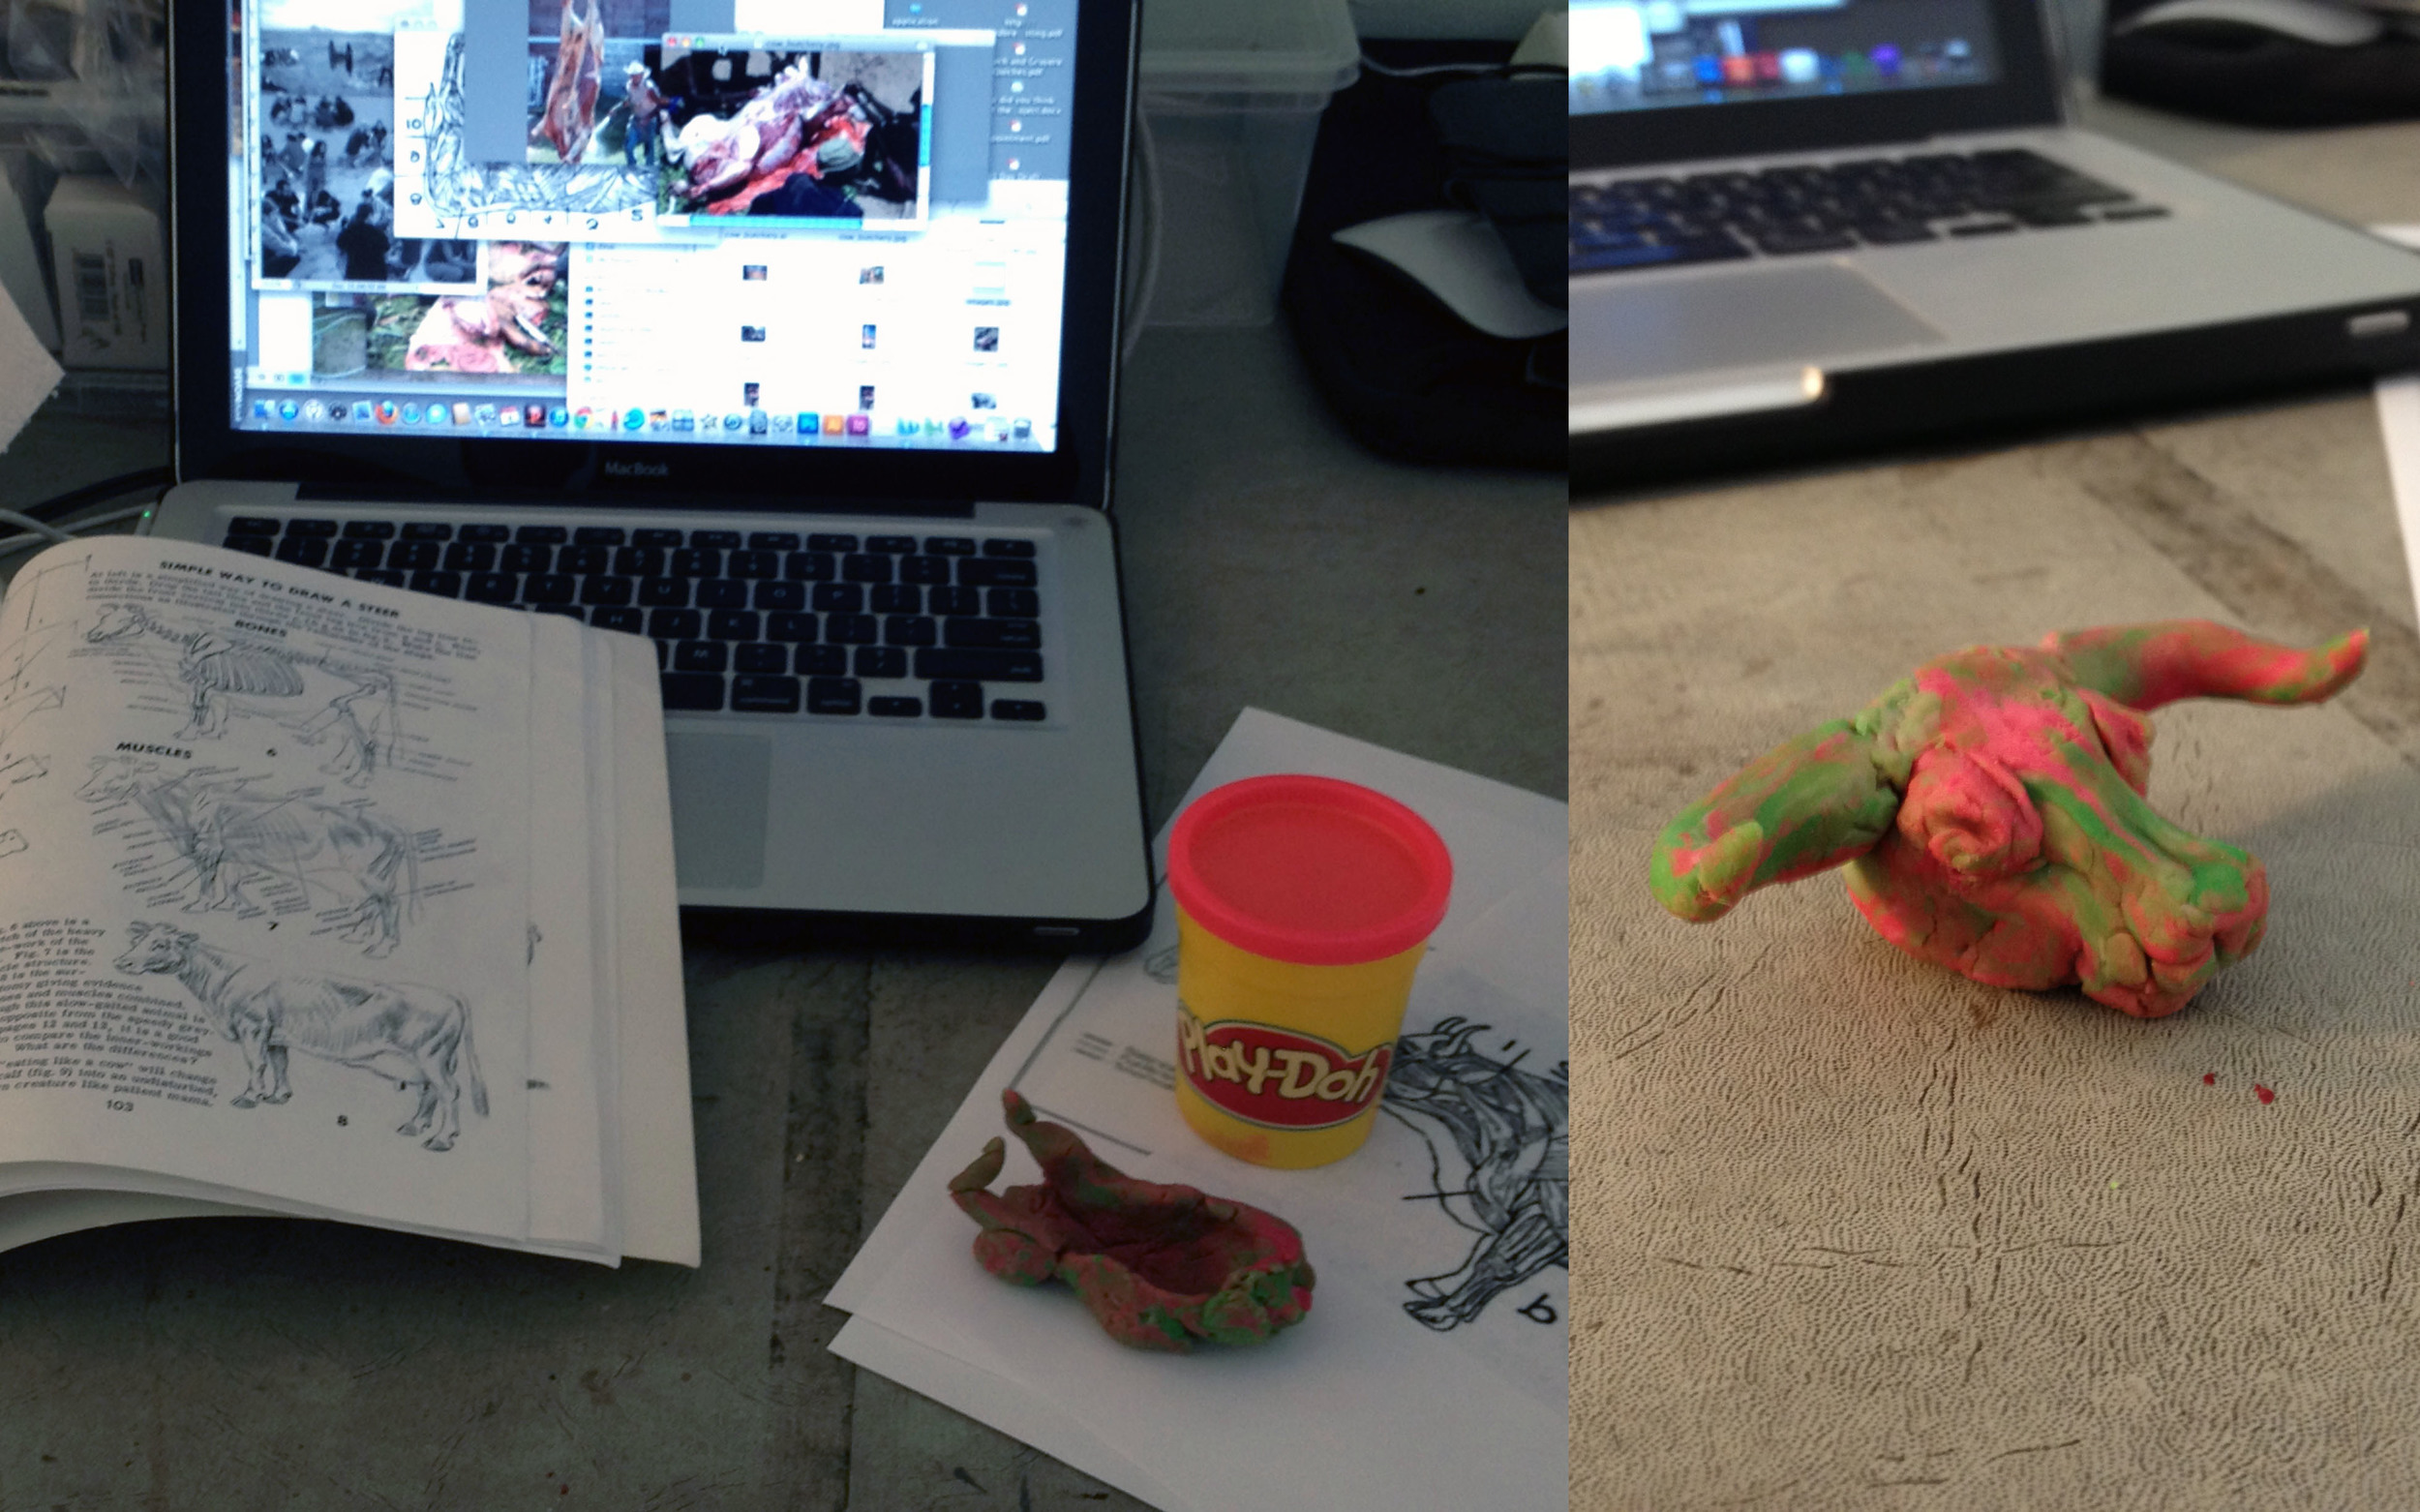 Modelling aurochs butchery with Play-Doh.